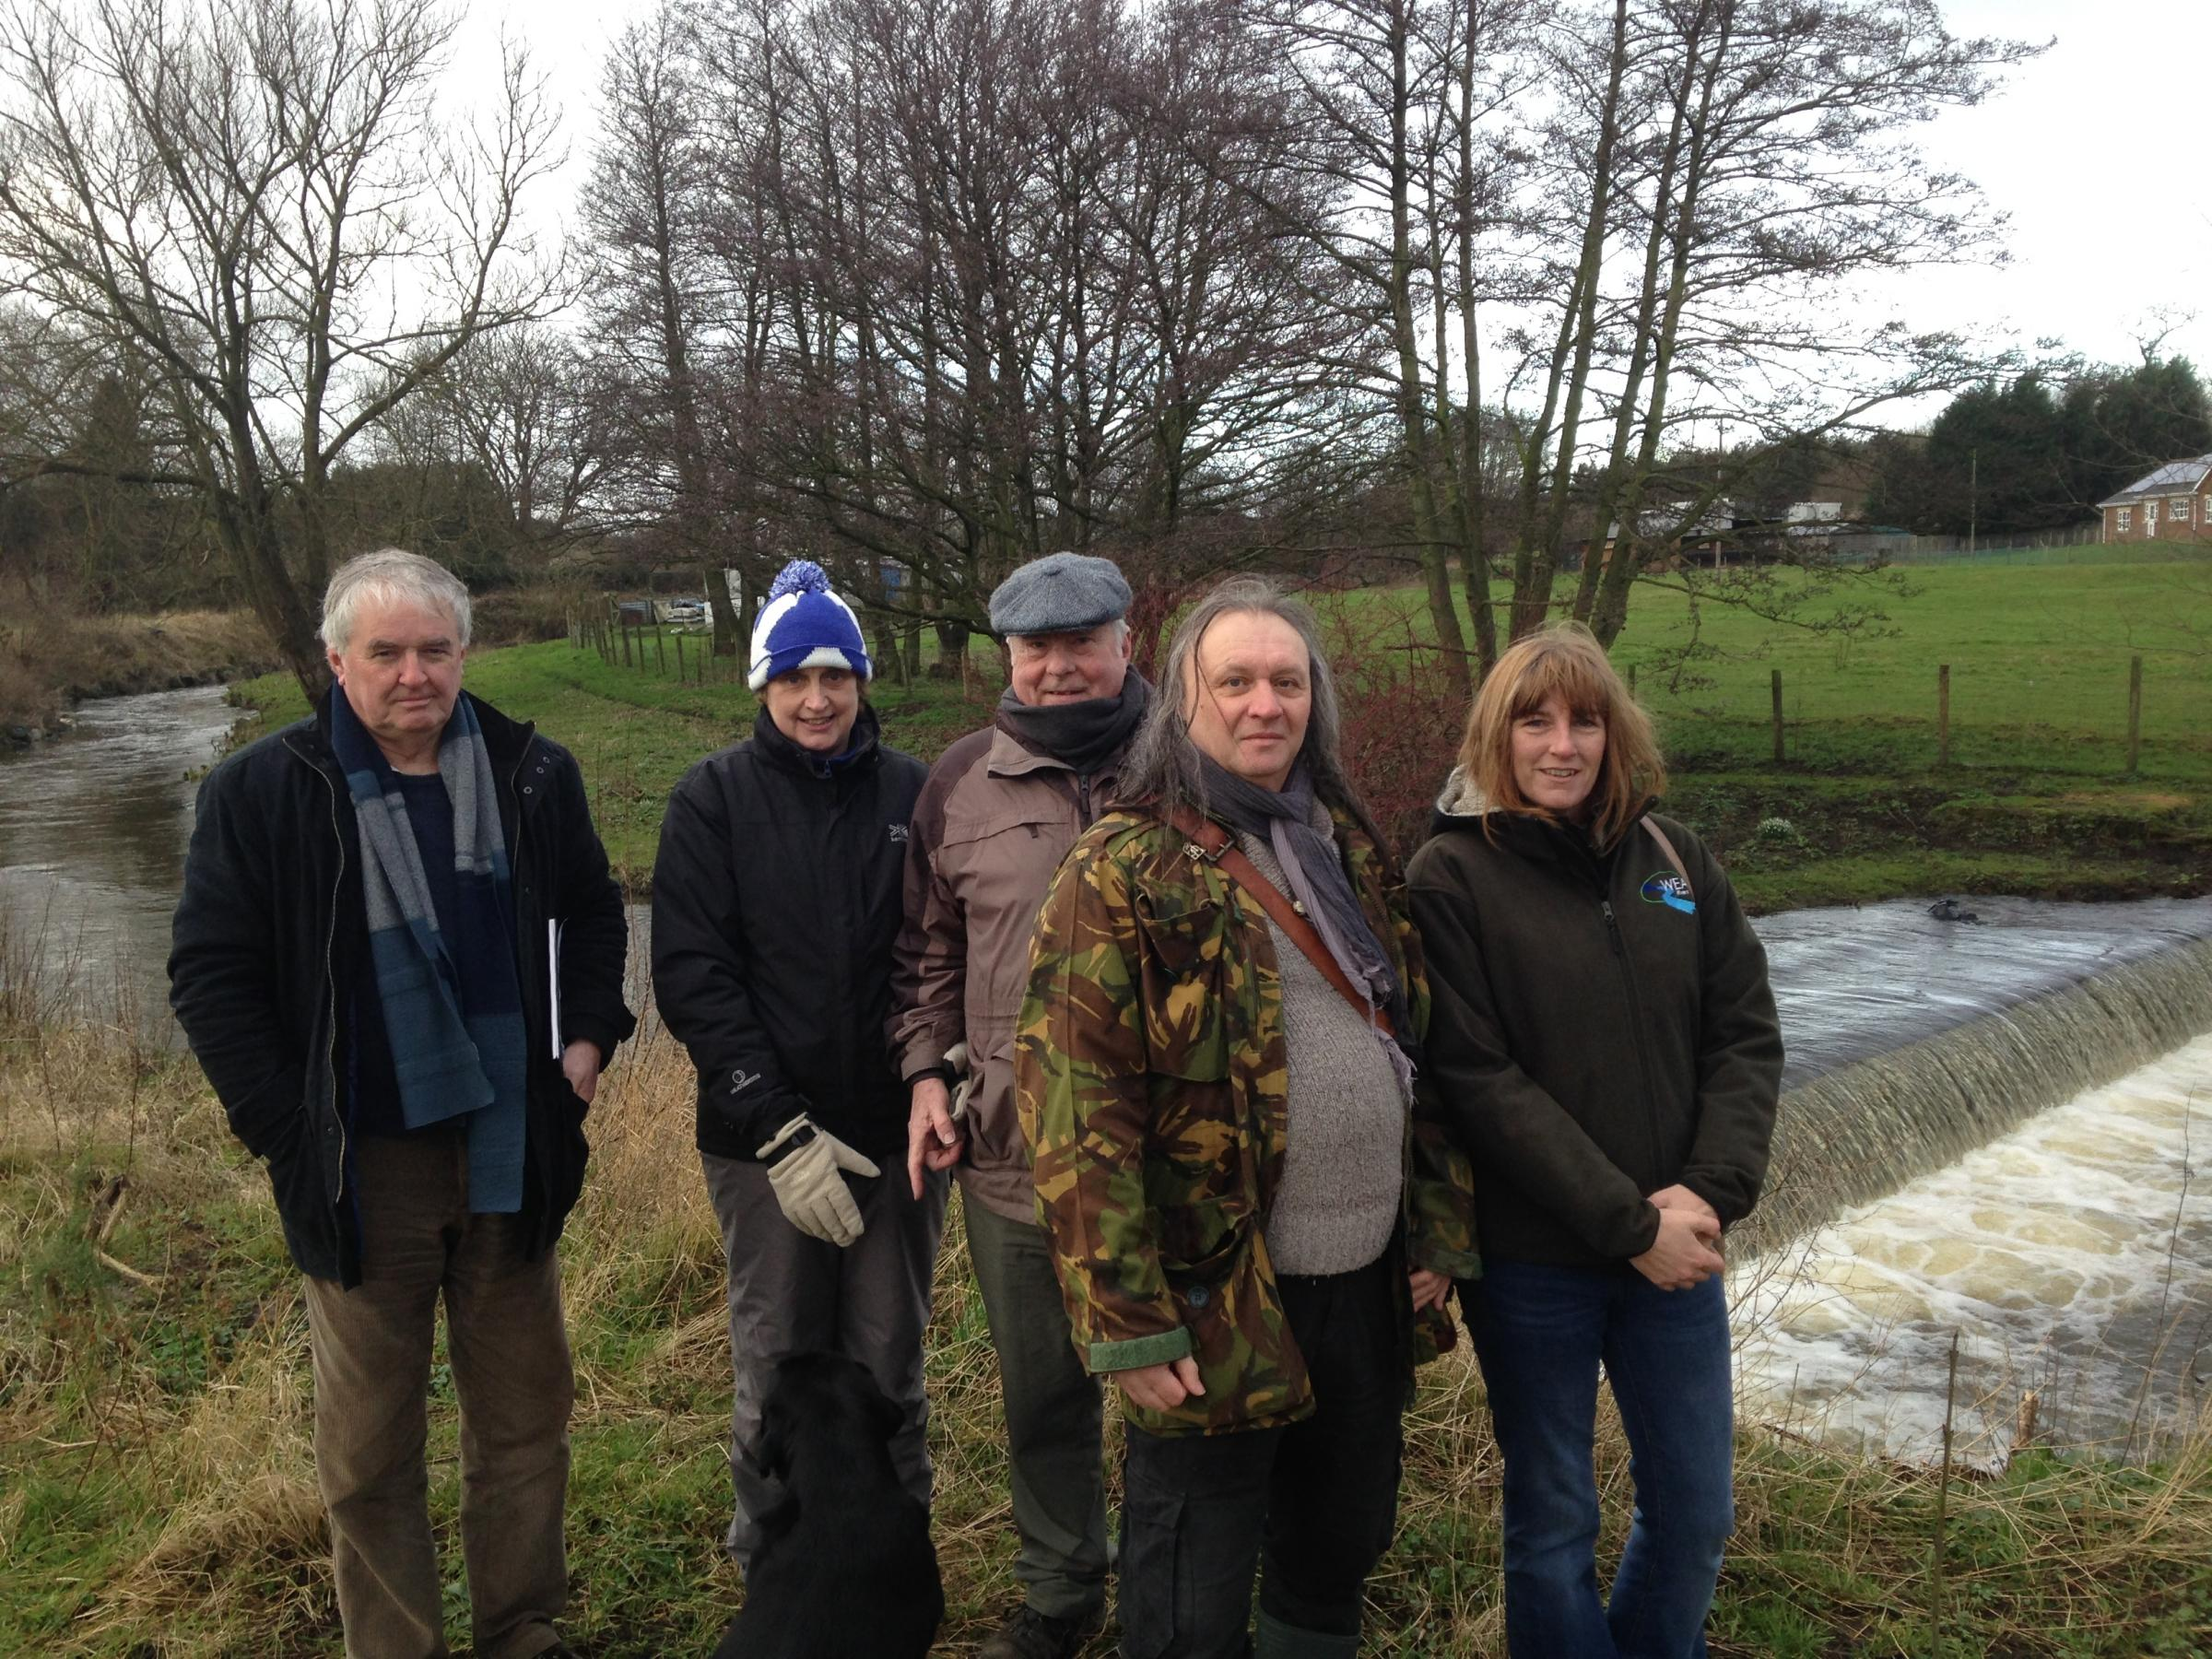 Martin Roberts, Ruth Wright, Mike Dunn, Stephen Warton and Diane Maughan are all working on the River Gaunless - for People and Wildlife Project